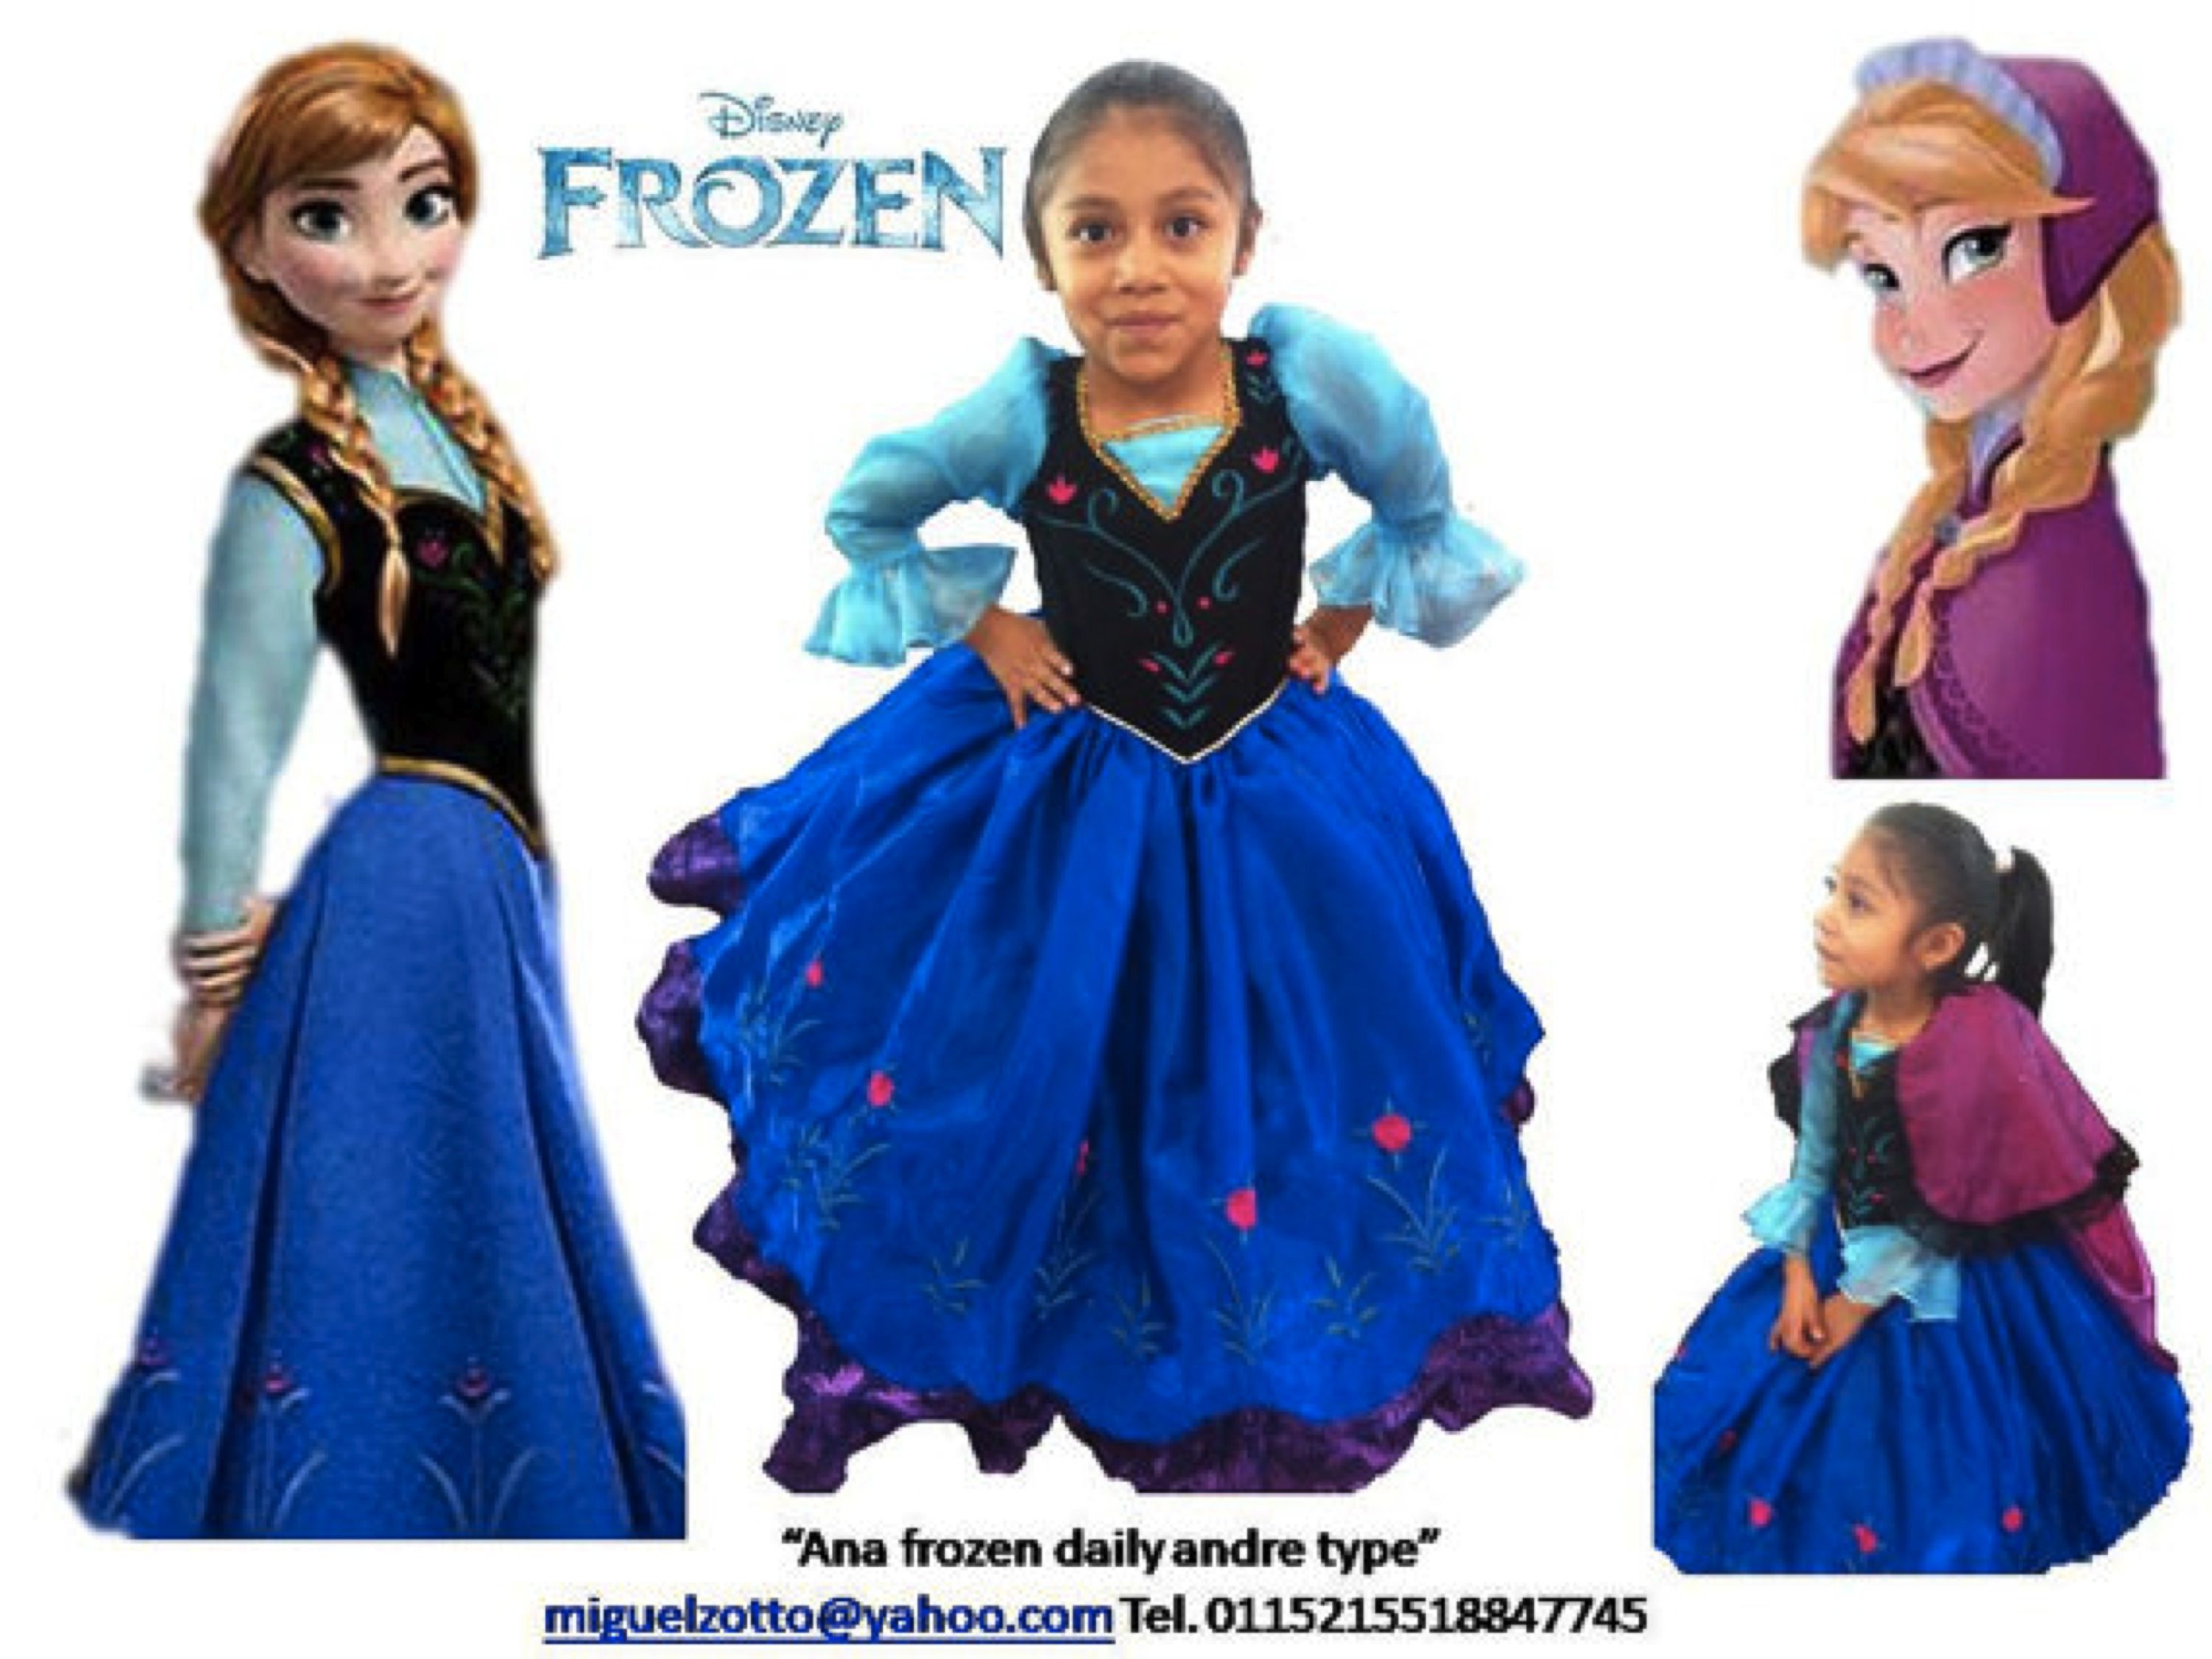 Ana Anna Frozen Disney Princess Girl Costume Dress Dressup Outfit Cosplay Disguise Ball Gown Masquerade I Disfraz Princesa Disfraz Frozen Vestidos Para Ninas